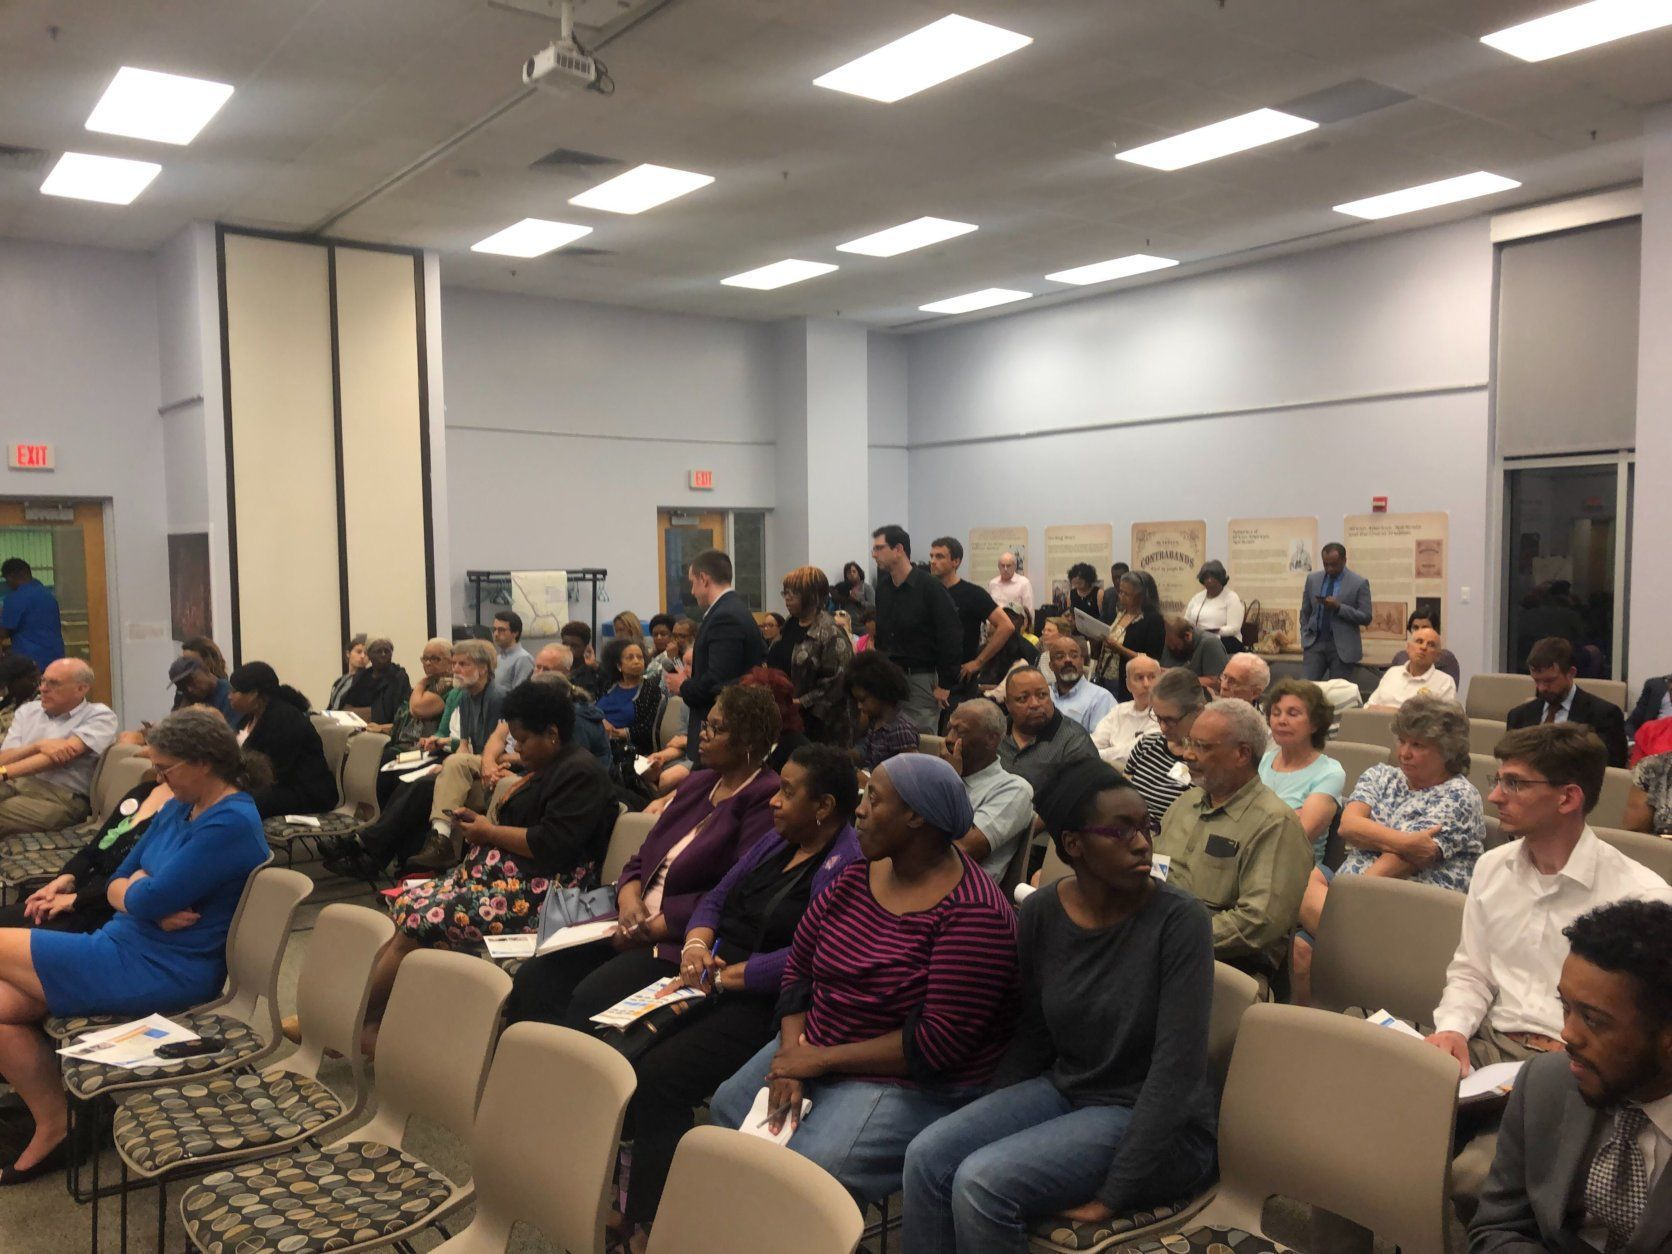 Among the concerns expressed by those in attendance are the 1,500 properties along both highways that would be affected, and the 34 homes claimed to make room for construction. (WTOP/Mike Murillo)